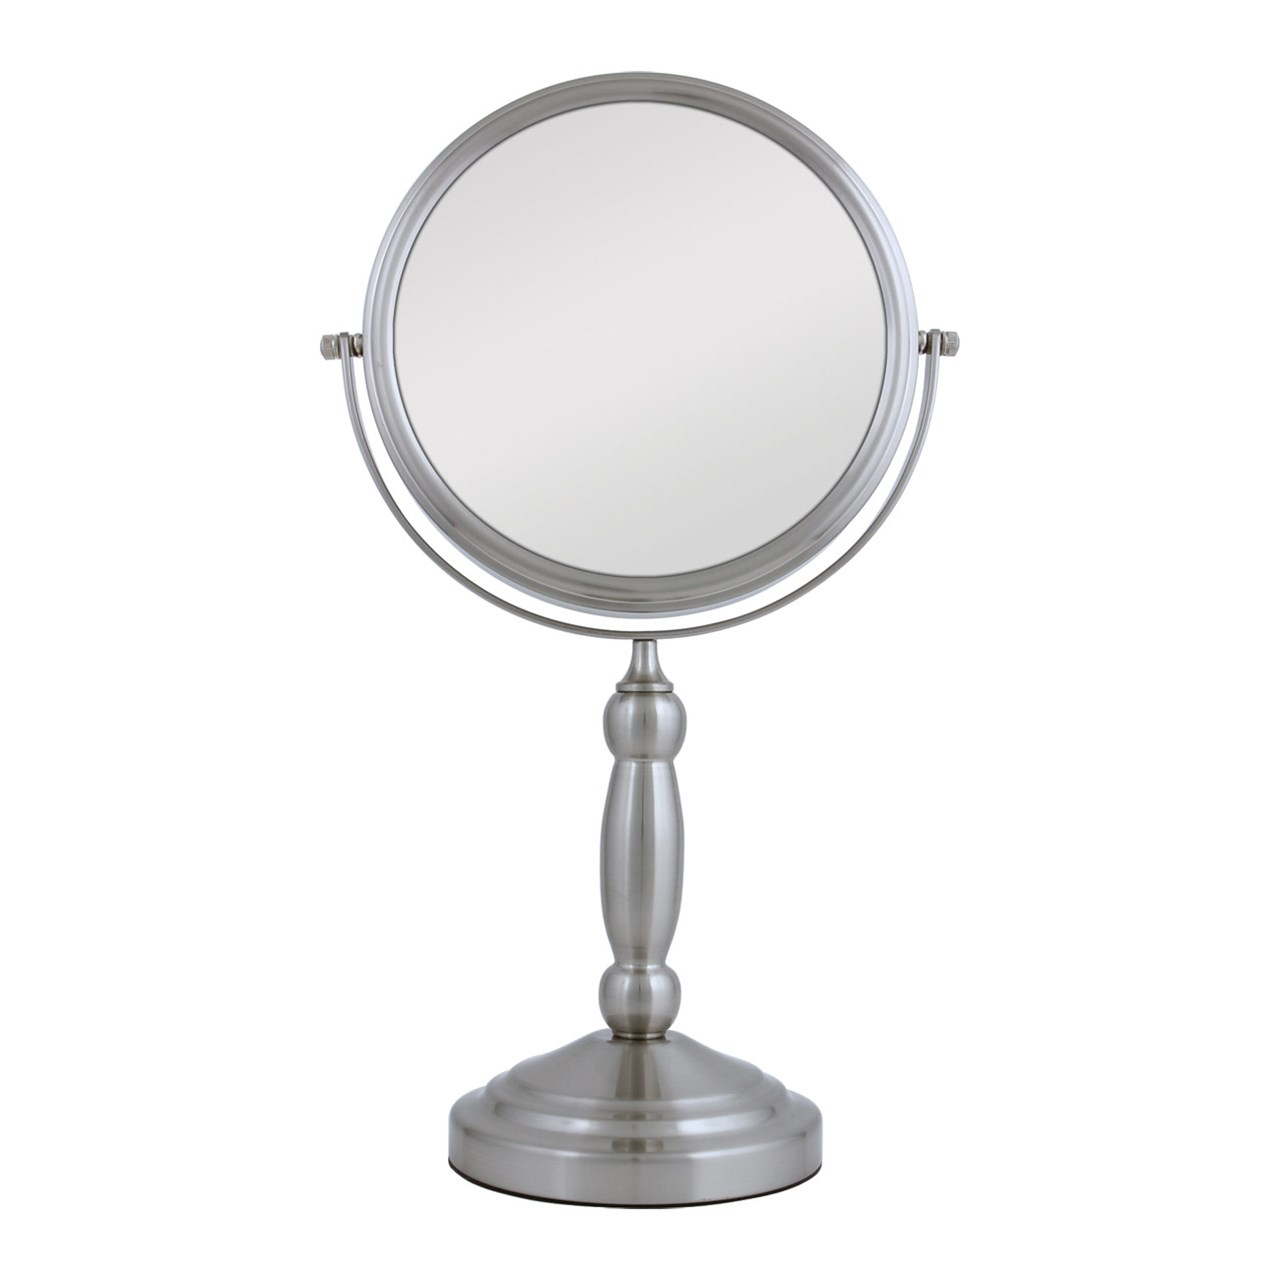 Conair Lighted Make Up Mirror | Conair Lighted Makeup Mirror 10x | Conair Lighted Makeup Mirror